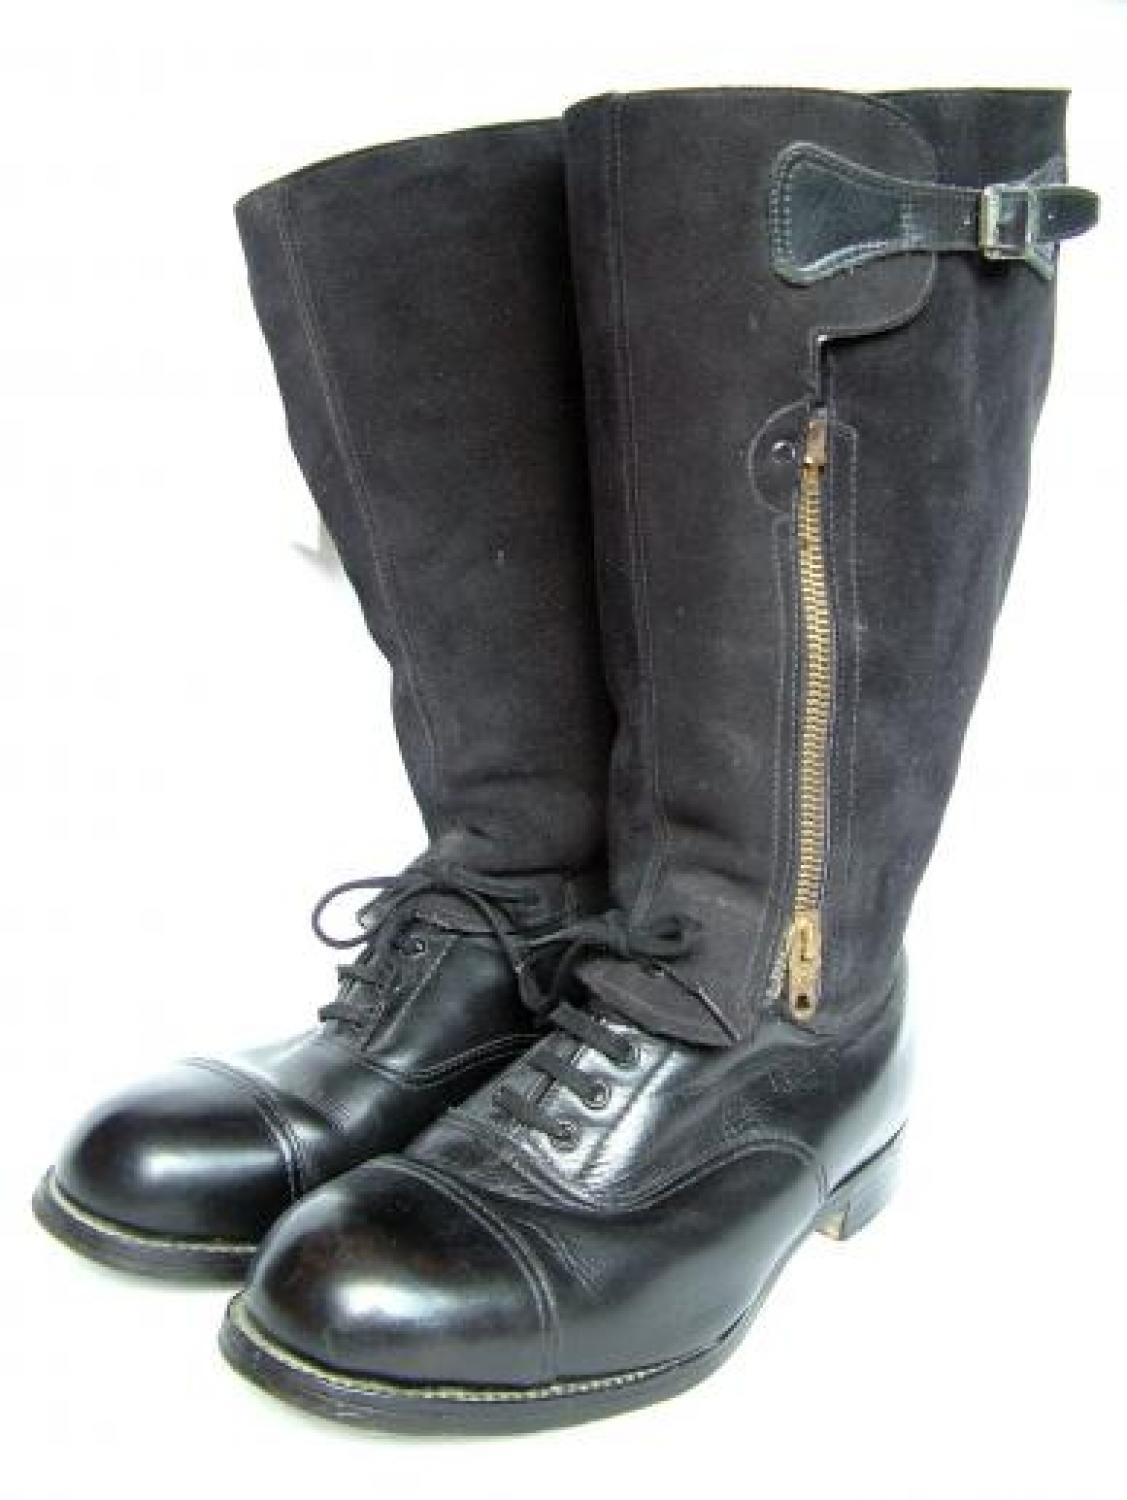 RAF 1943 Pattern 'Escape' Flying Boots